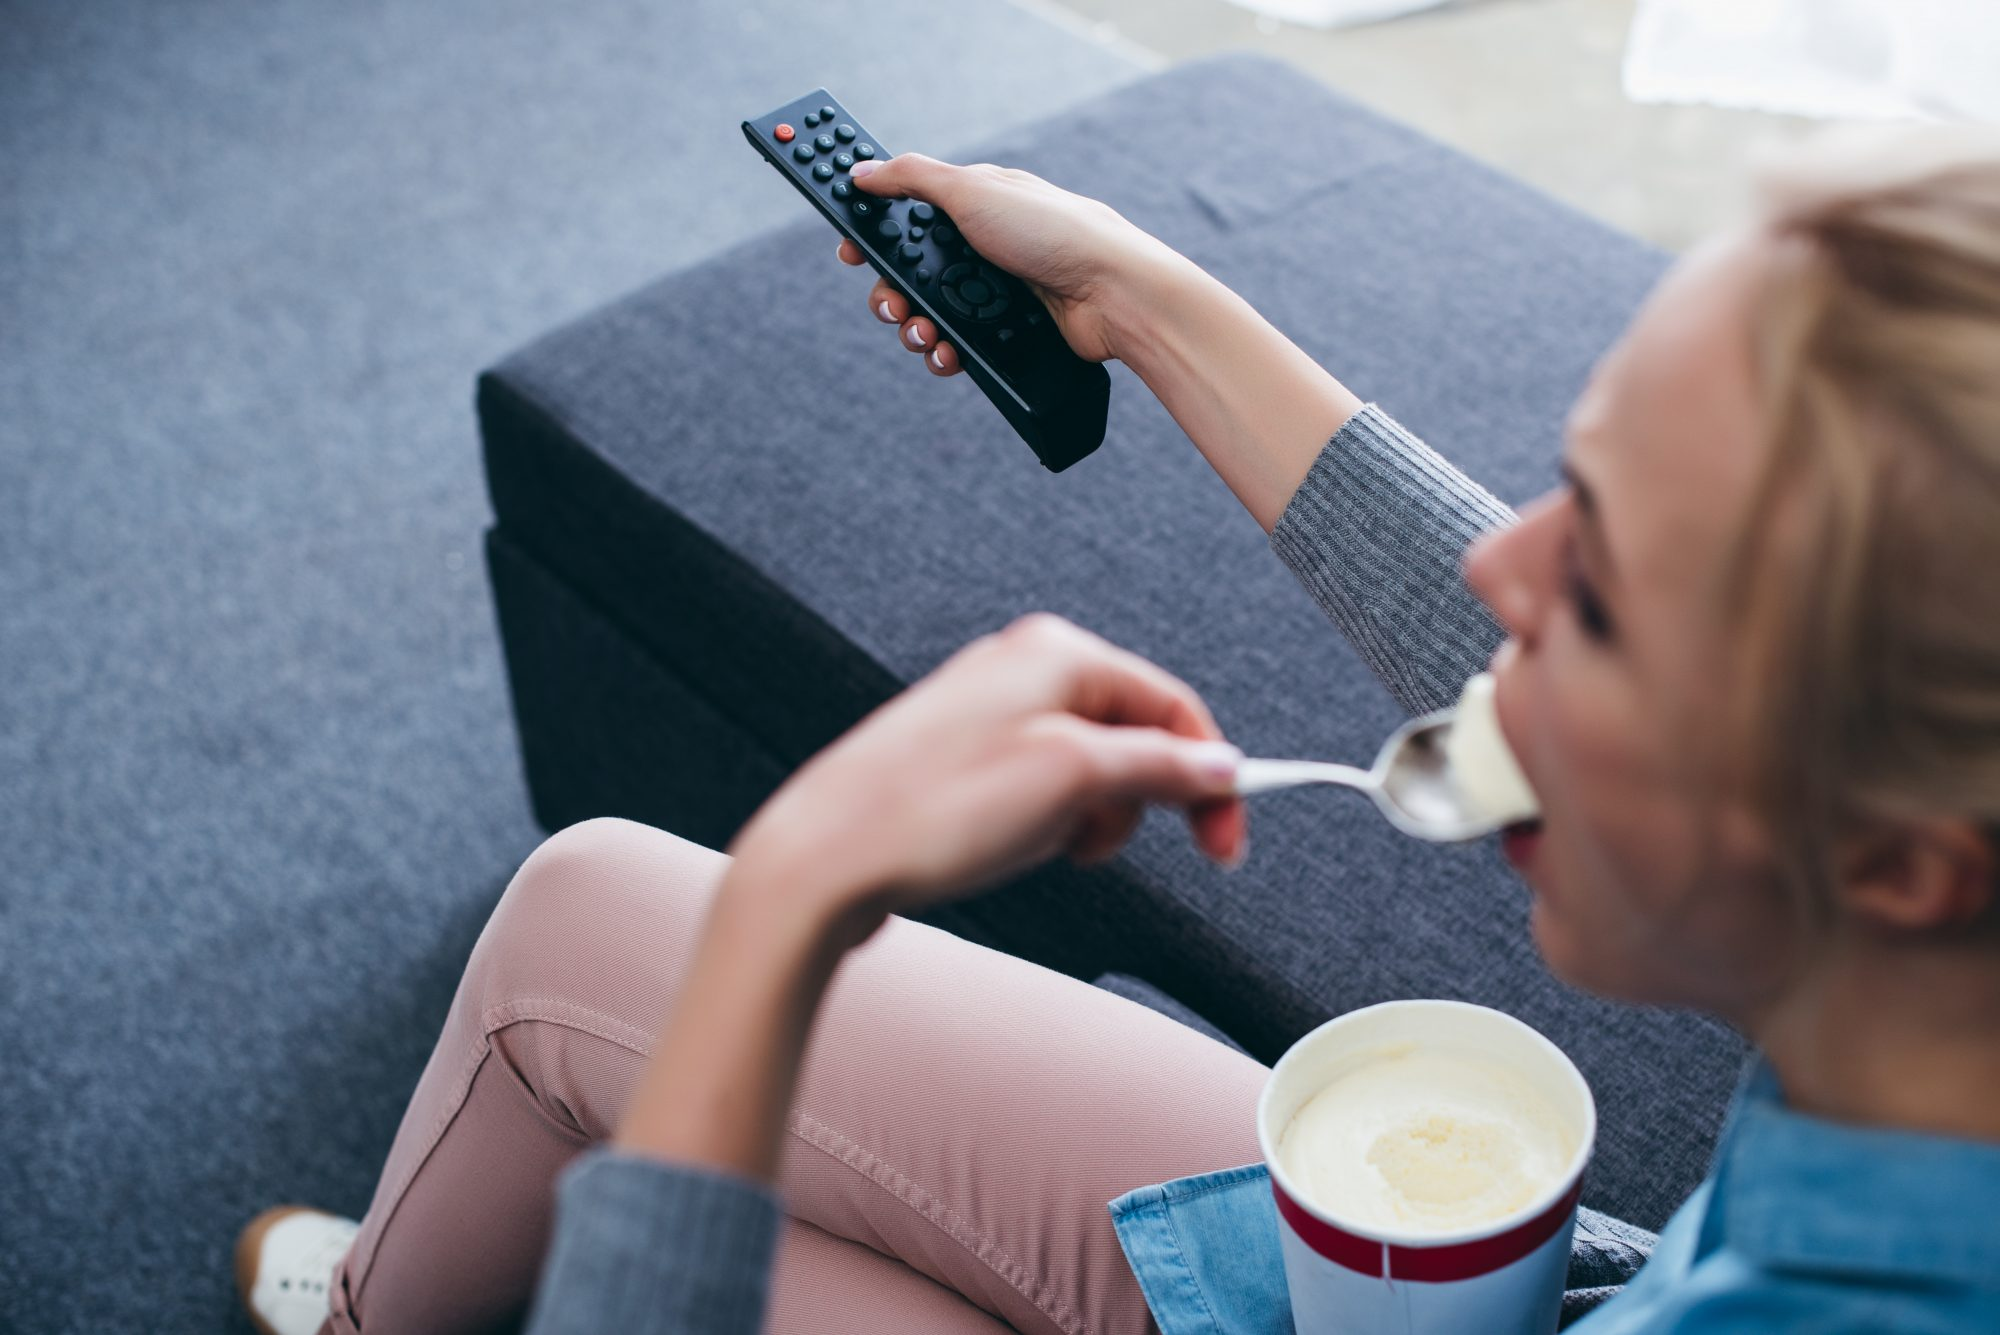 cropped view of woman sitting on couch and eating ice cream while watching tv